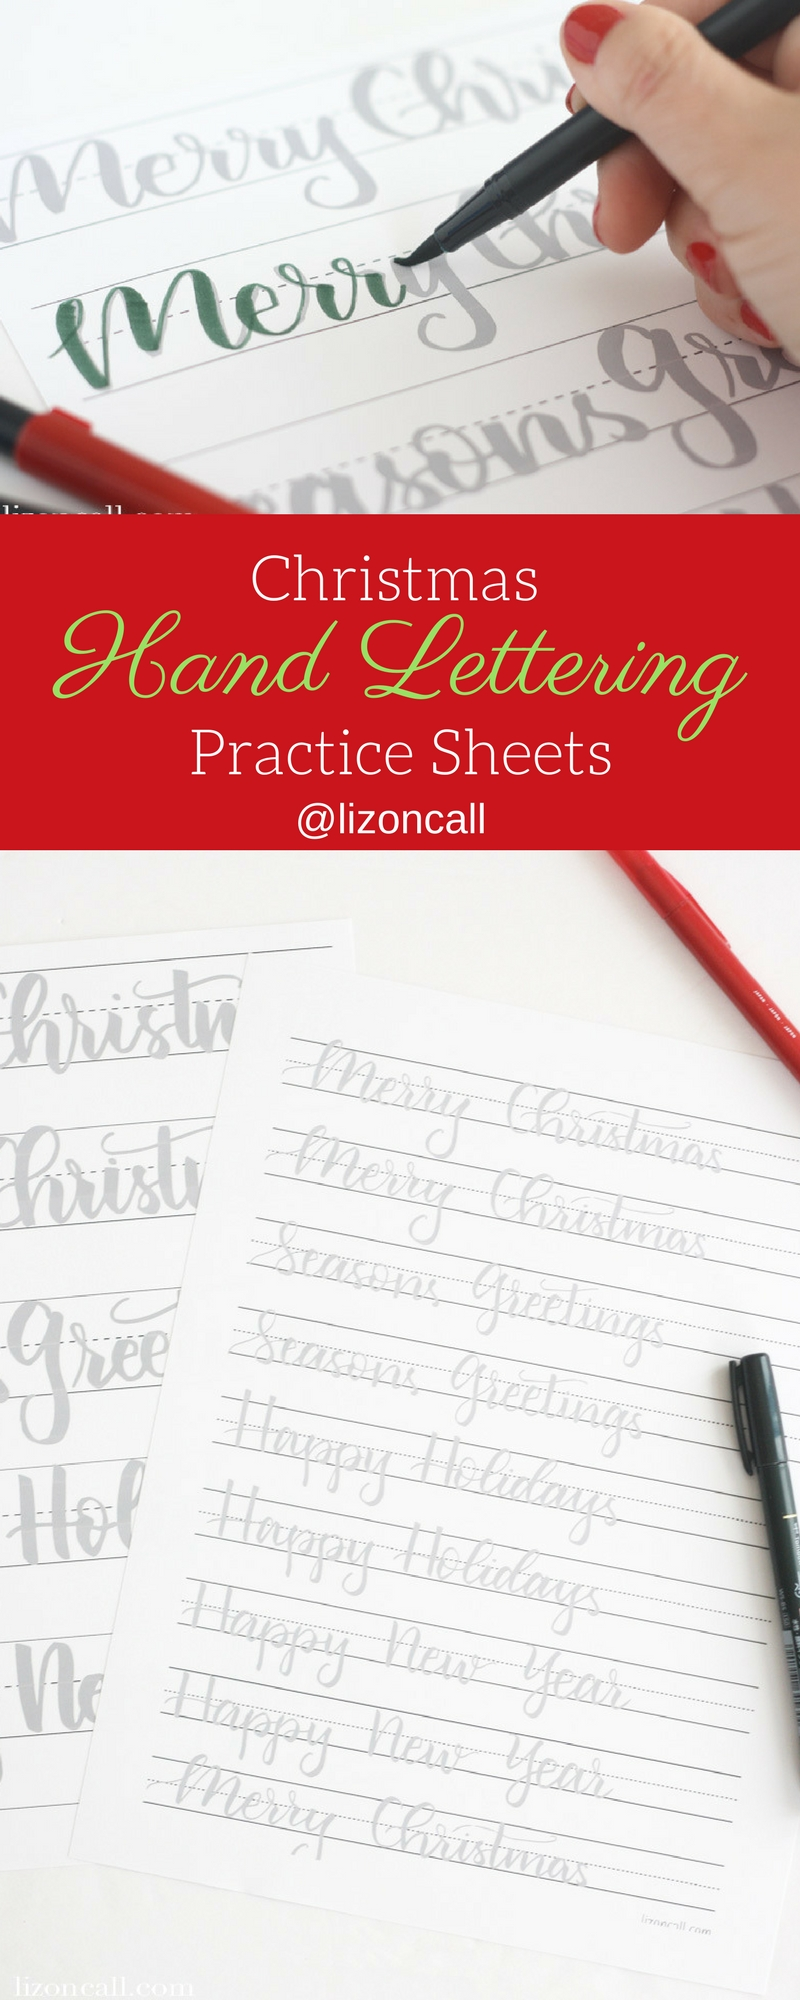 Get ready to letter all the holiday cards this year with these Christmas hand lettering practice sheets. #christmas #handlettering #handletteringpractice #brushlettering #practicesheets